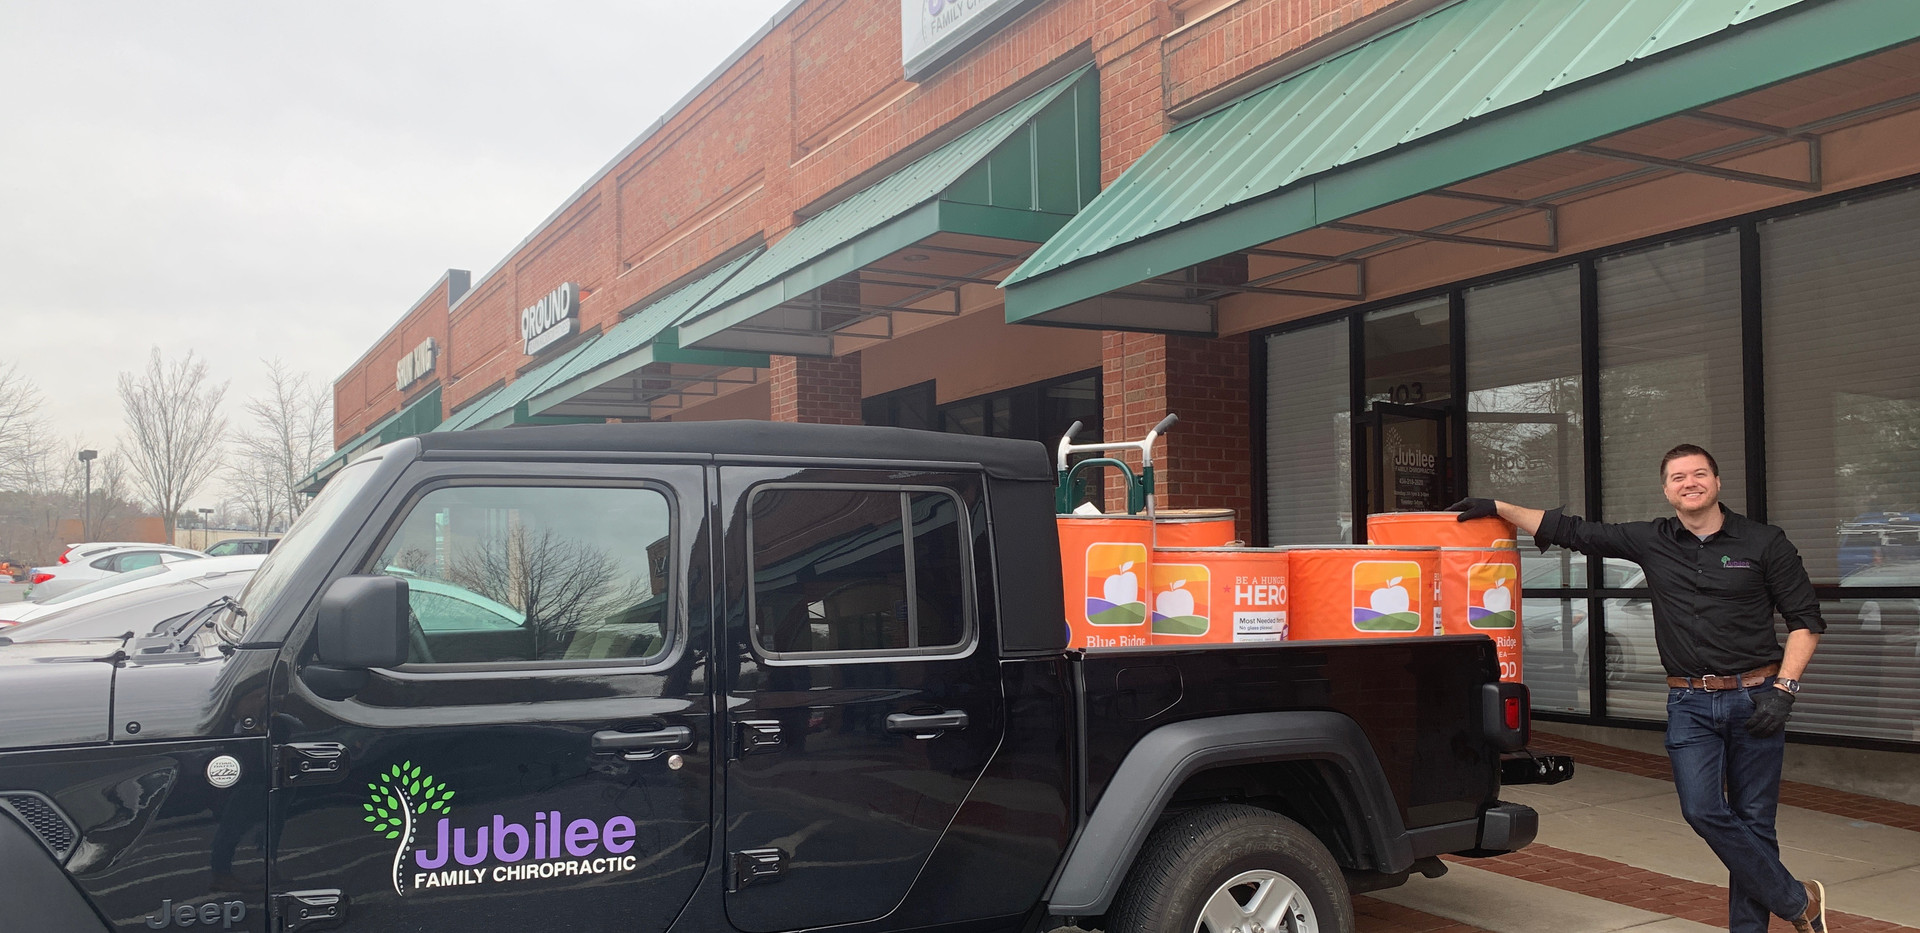 Jubilee Family Chiropractic 2020 Blue Ridge Food Drive. 006